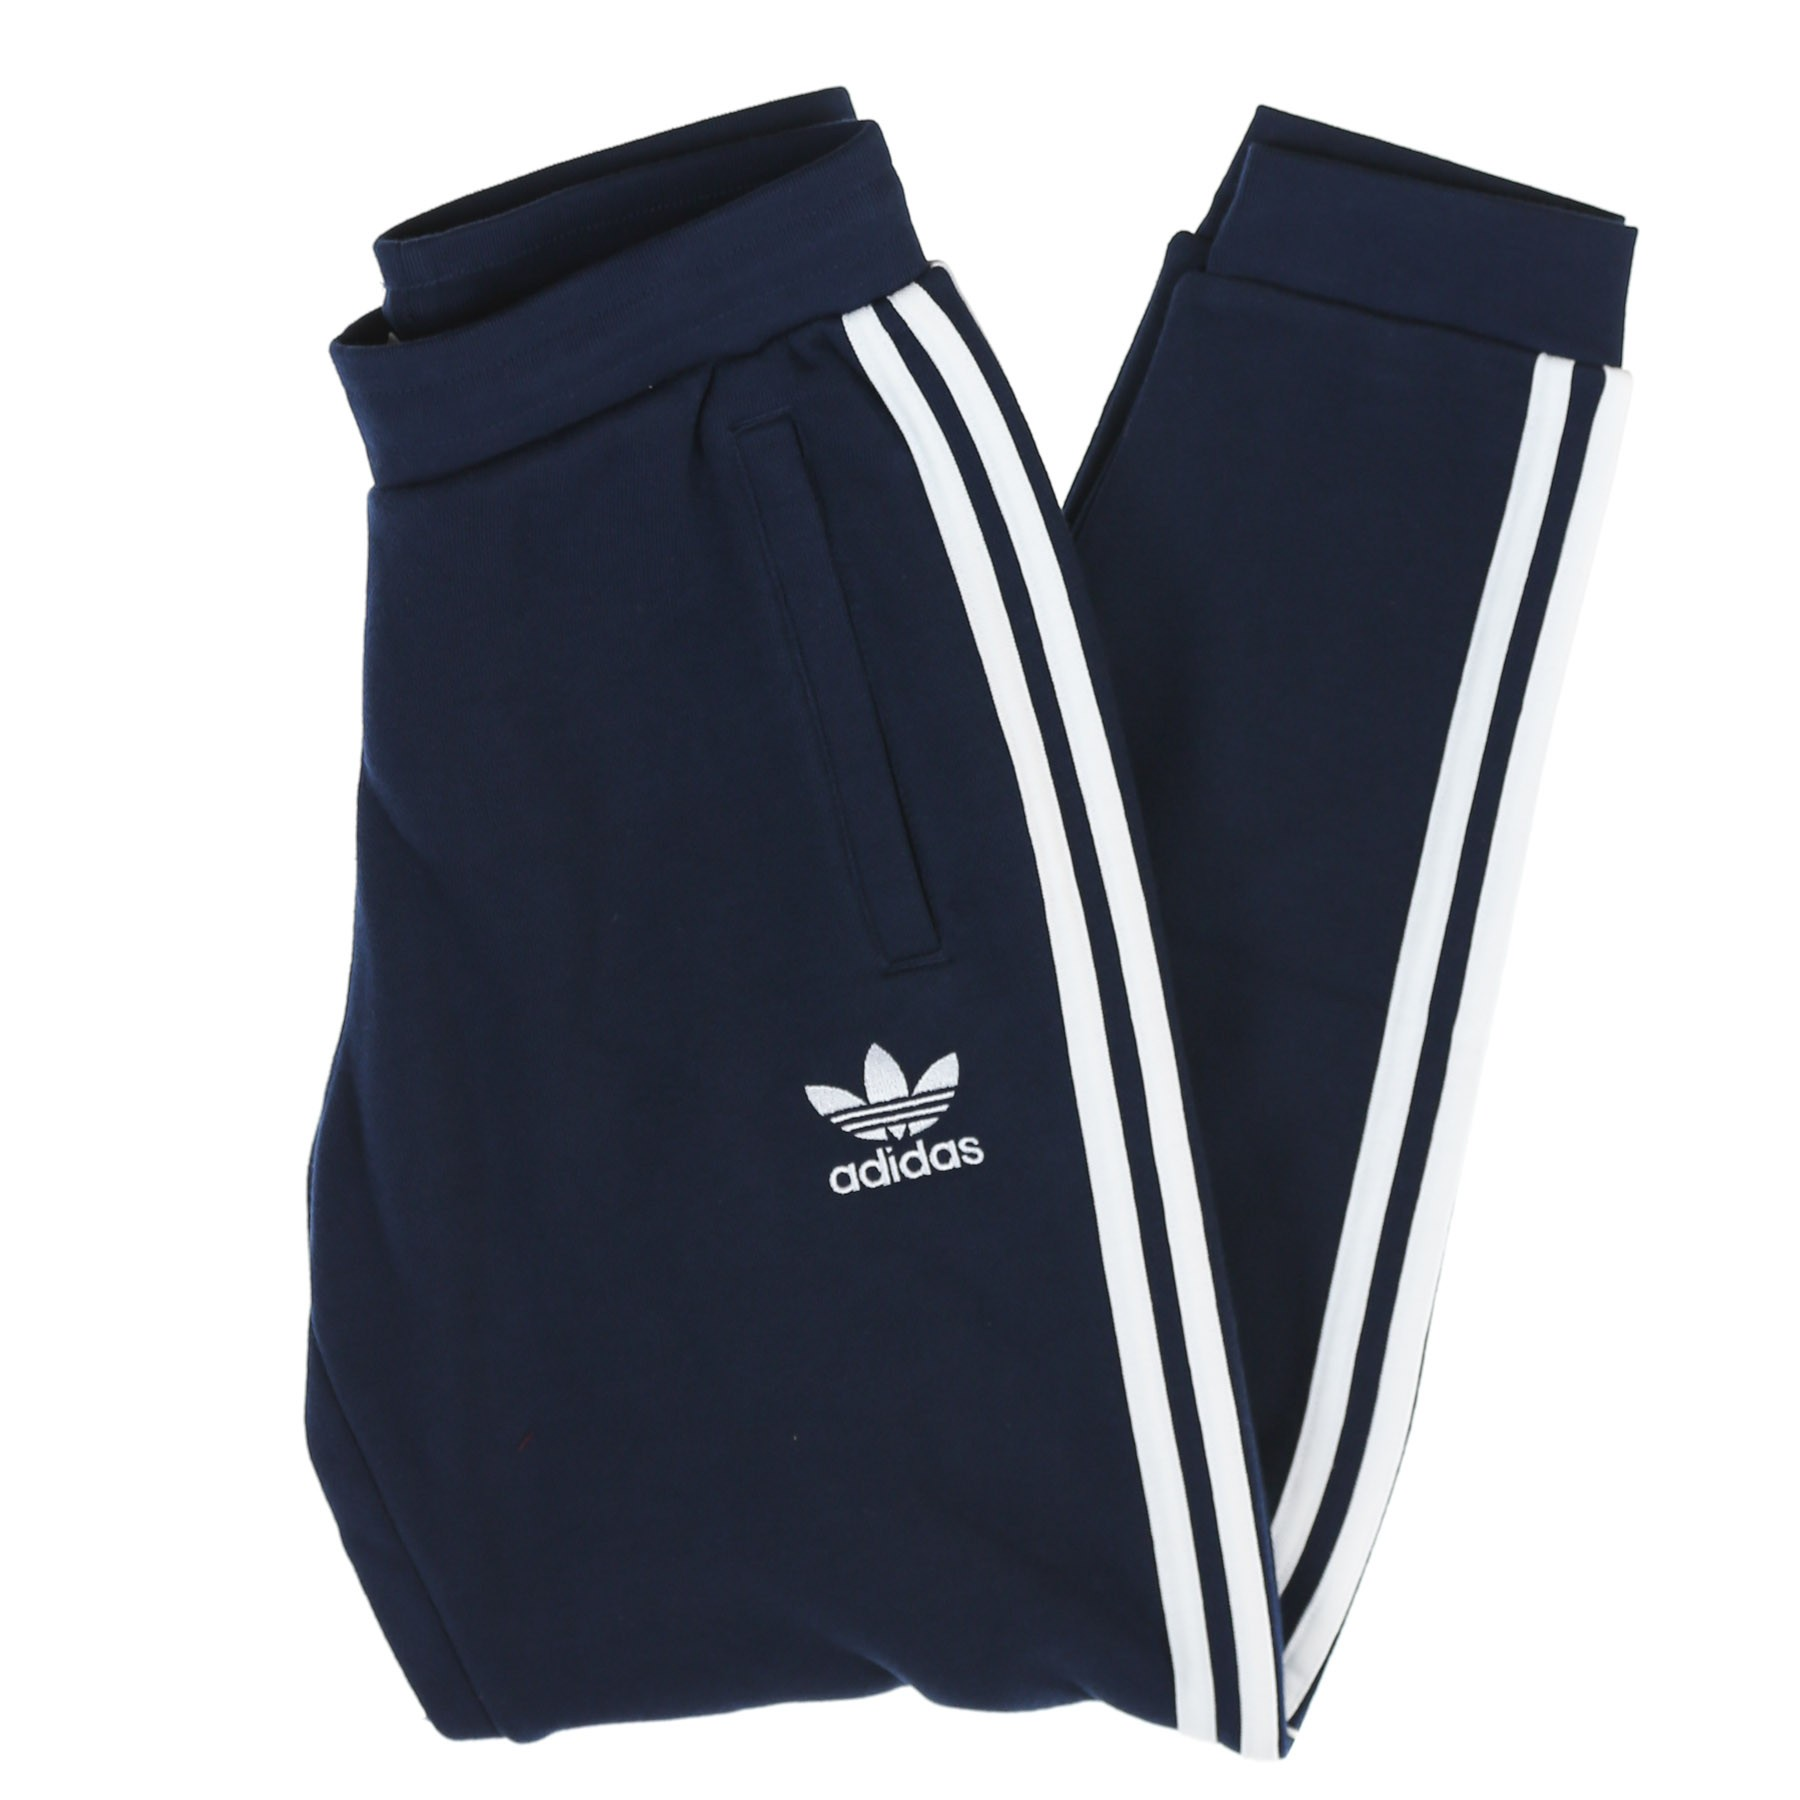 pantaloni adidas about you